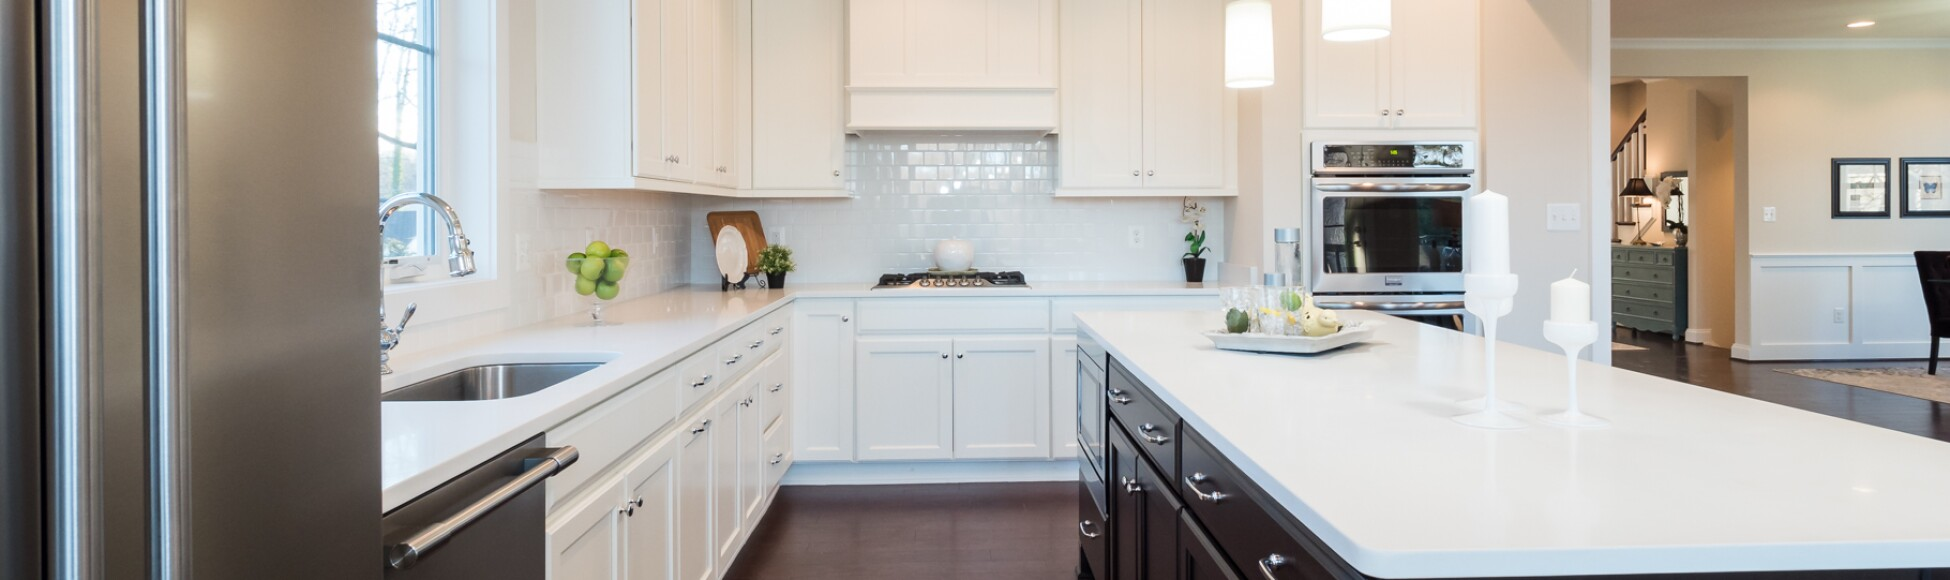 Kitchen Cabinets, Stairways and Railings, Custom Built-in Cabinetry ...